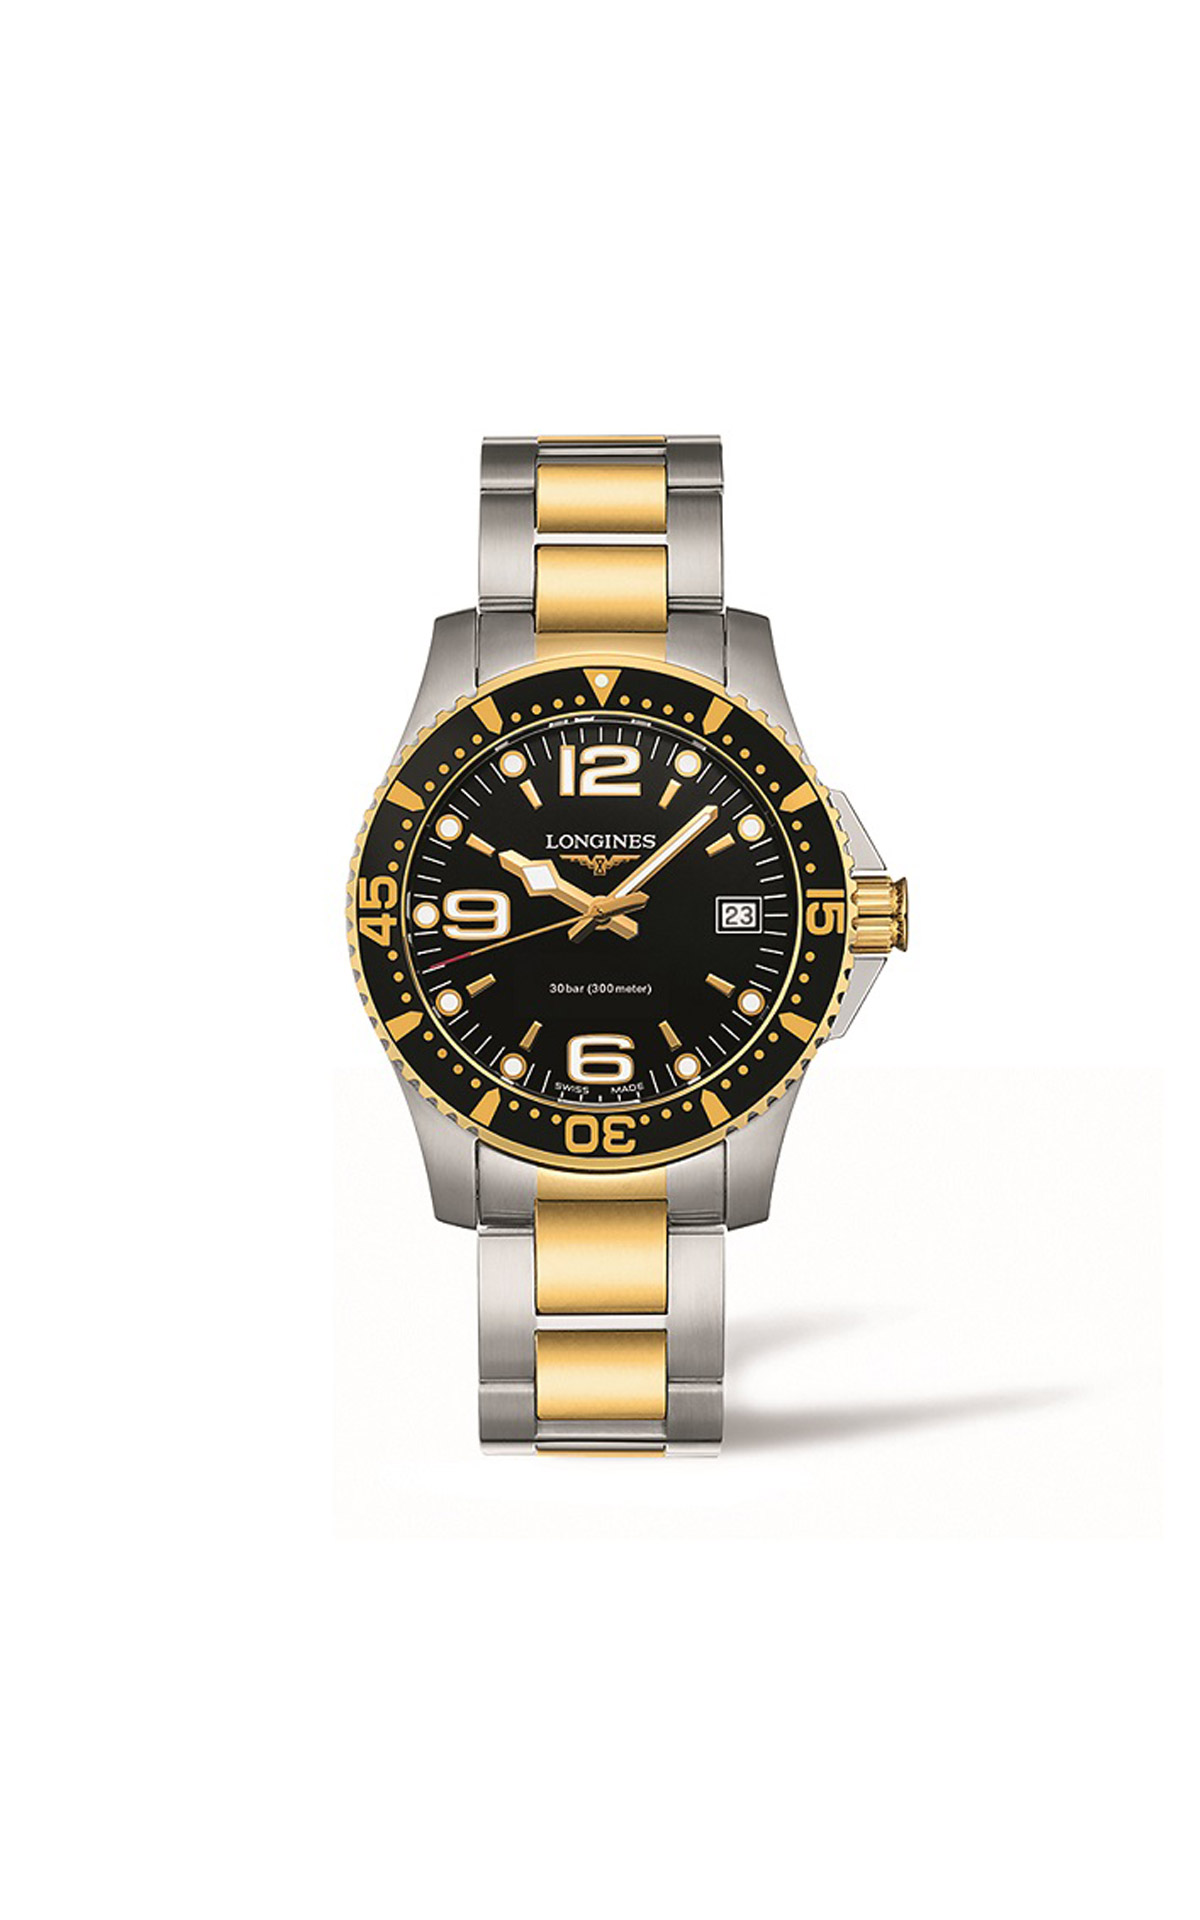 Watch Longines HydroConquest quartz 34mm Hour Passion